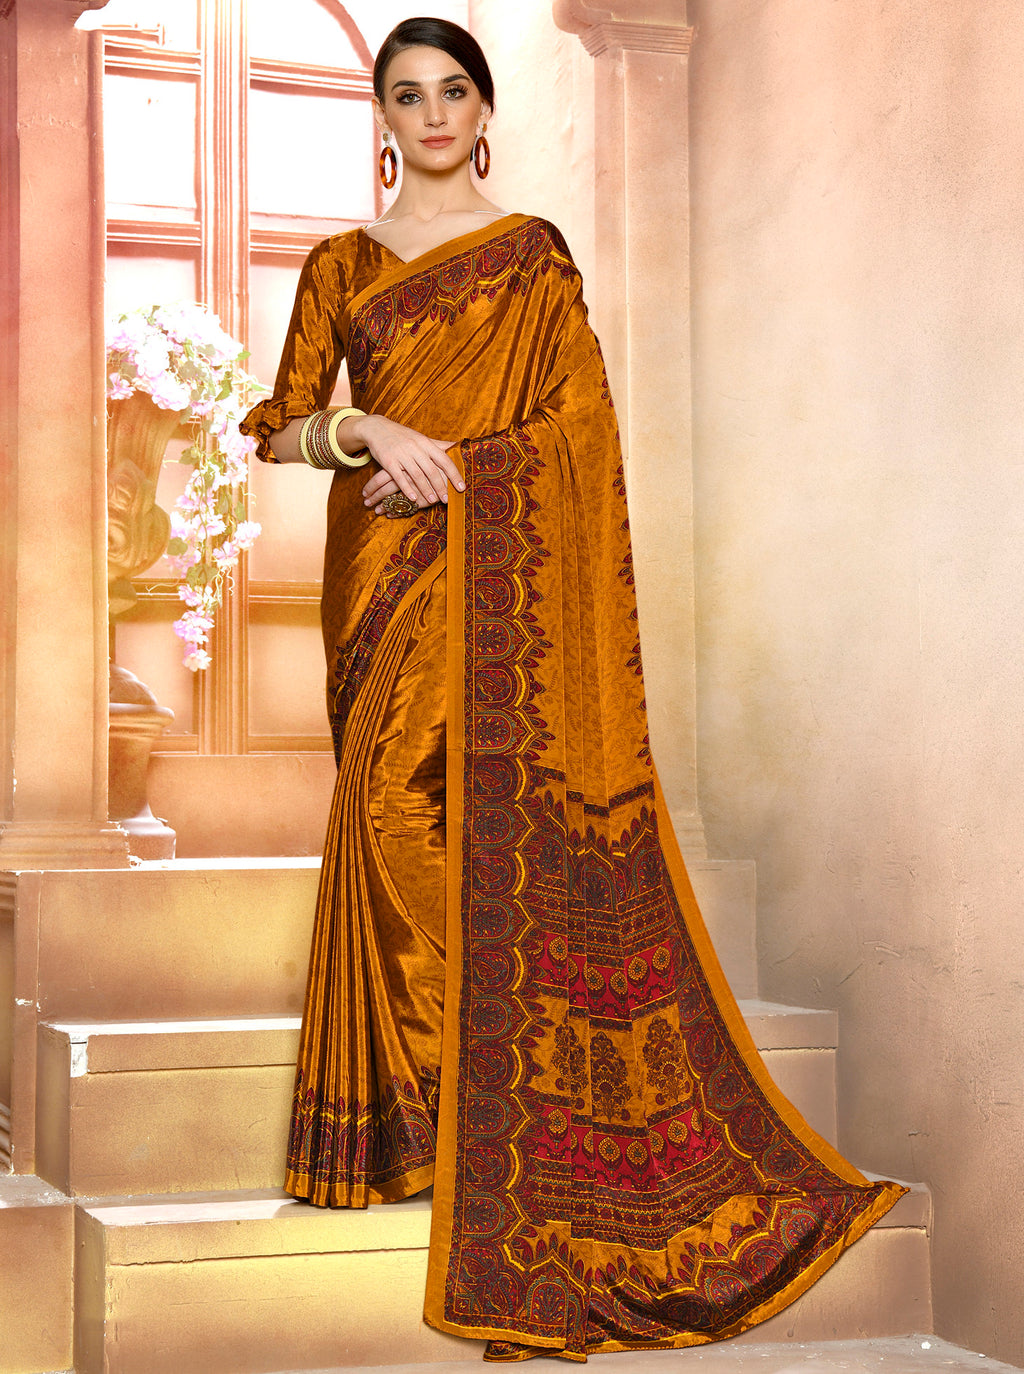 Mustard Yellow Color Crepe Soft & Light Weight Printed Sarees NYF-7279